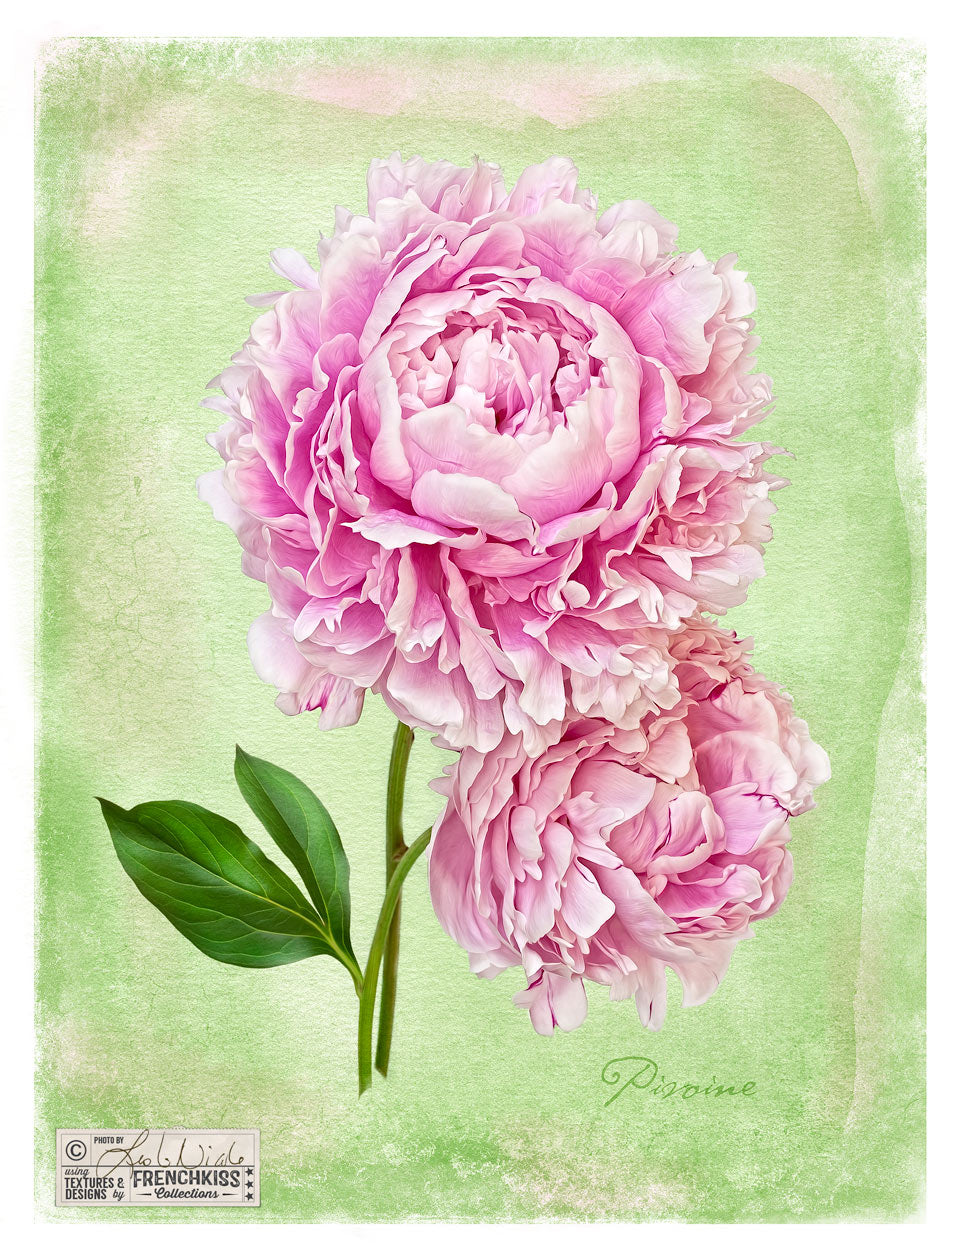 Botanical style peony photograph with a watercolor texture by Leslie Nicole.